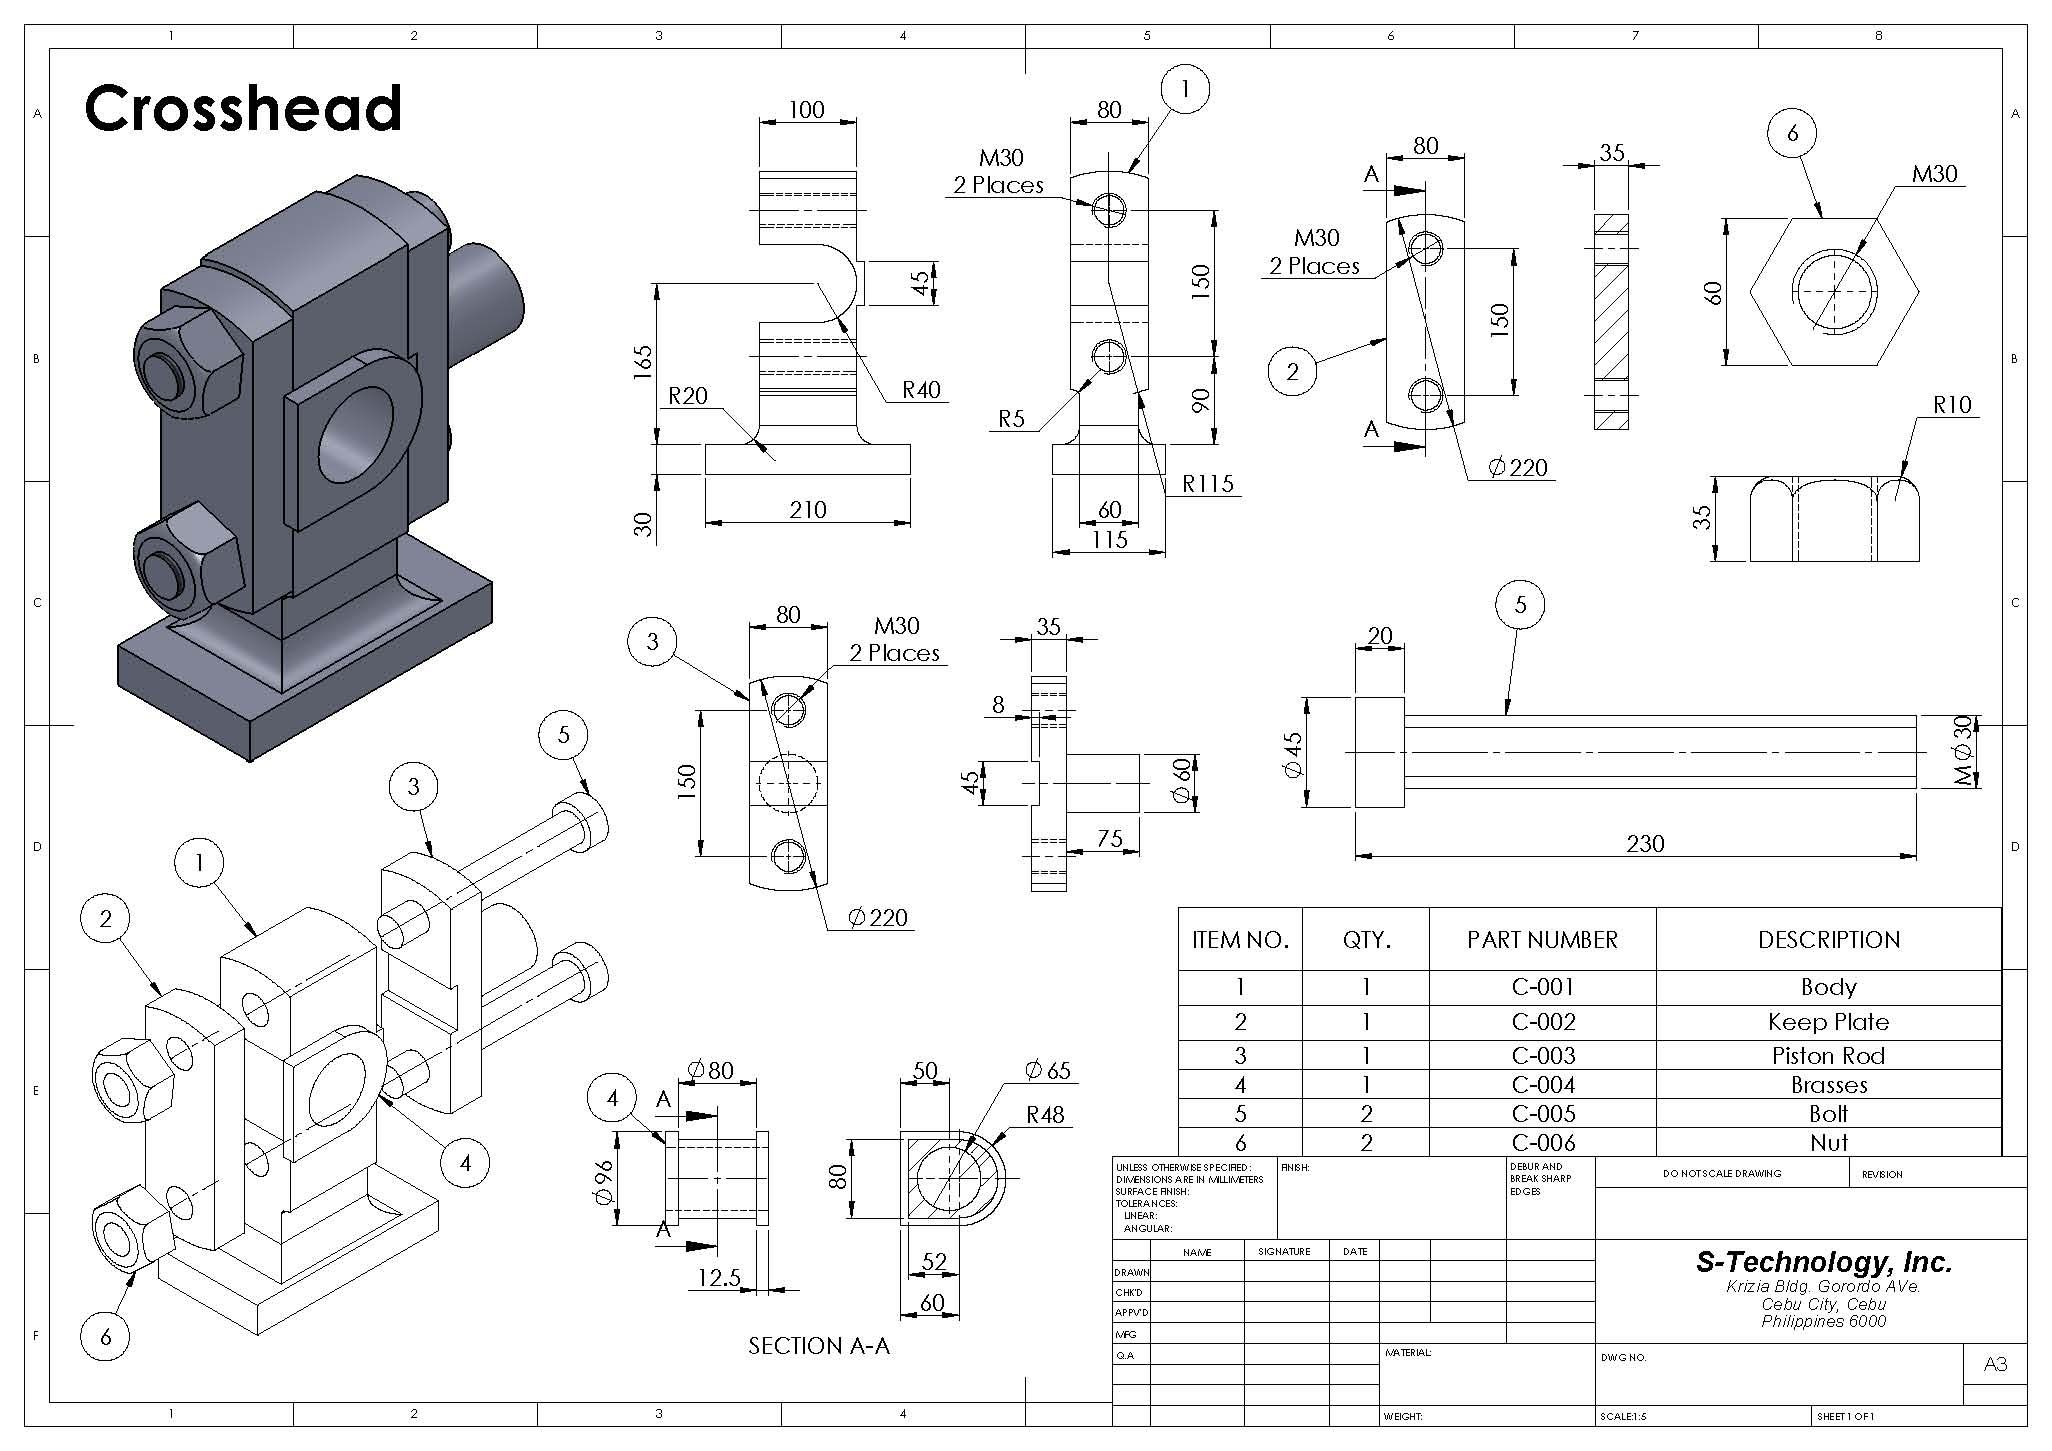 Detailed Assembly Drawing Buscar Con Google Mechanical Engineering Design Mechanics Drawing Sketches Mechanics Drawing